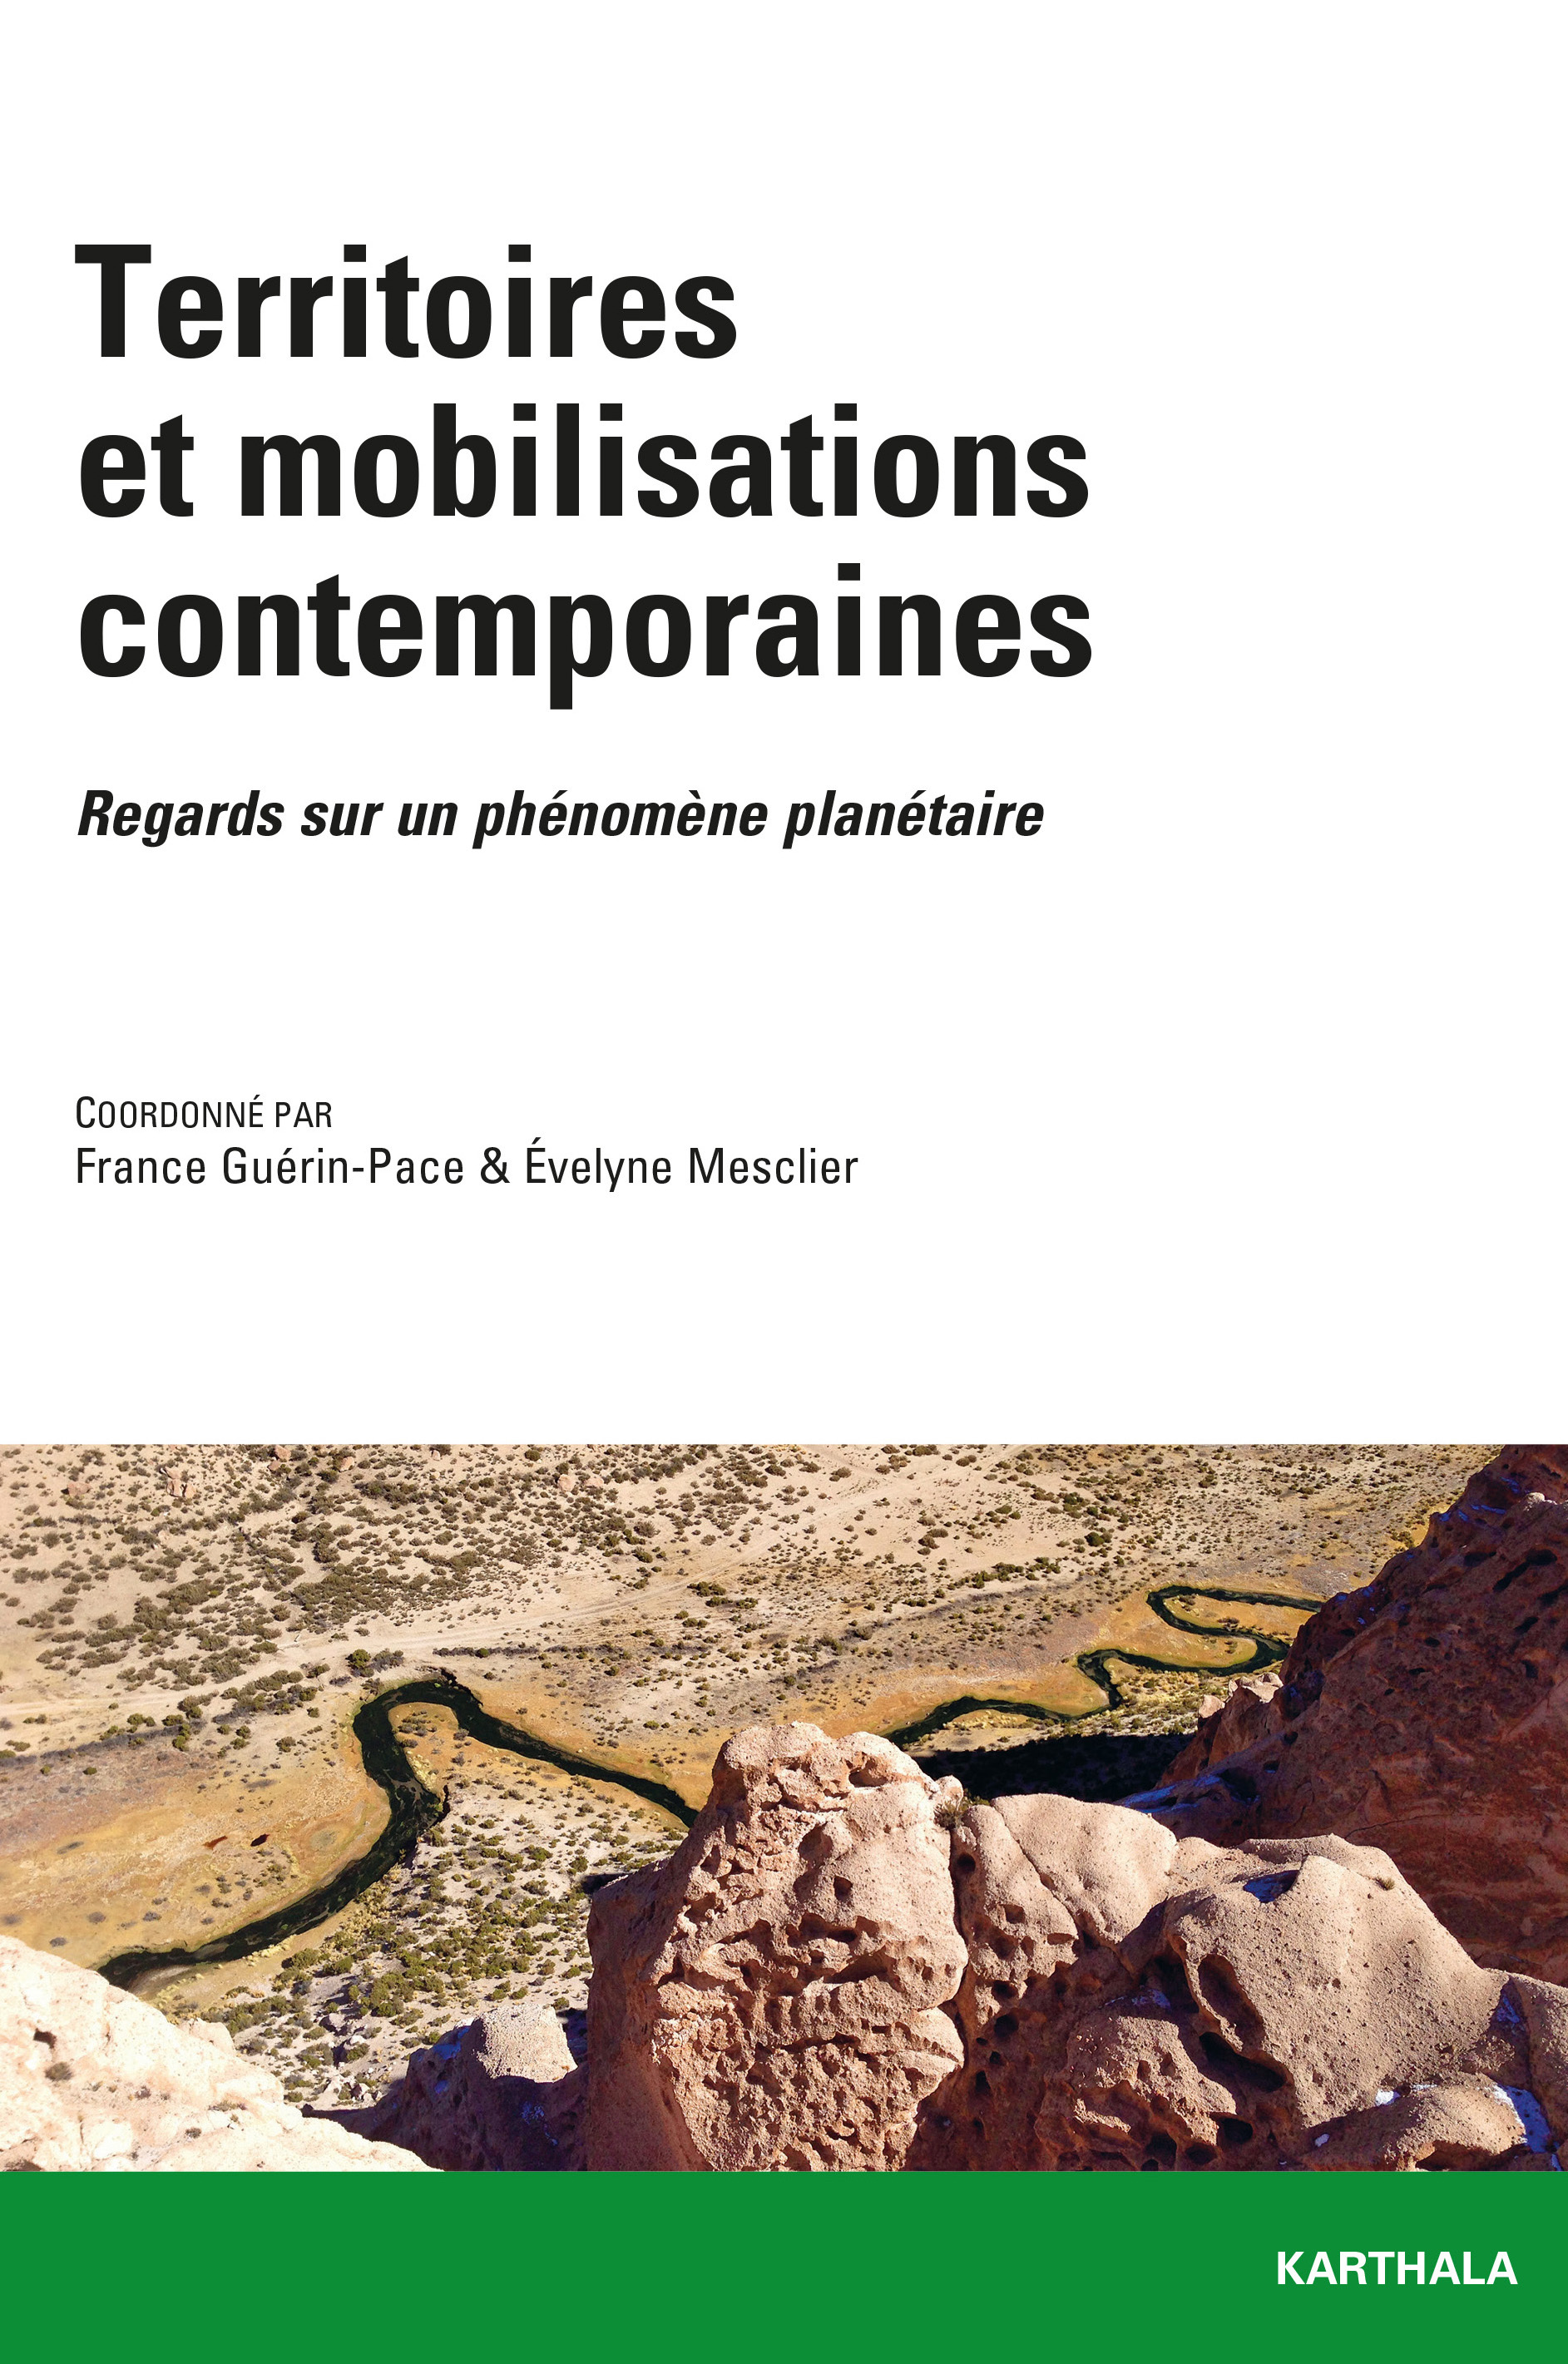 TERRITOIRES ET MOBILISATIONS CONTEMPORAINES. REGARDS SUR UN PHENOMENE PLANETAIRE